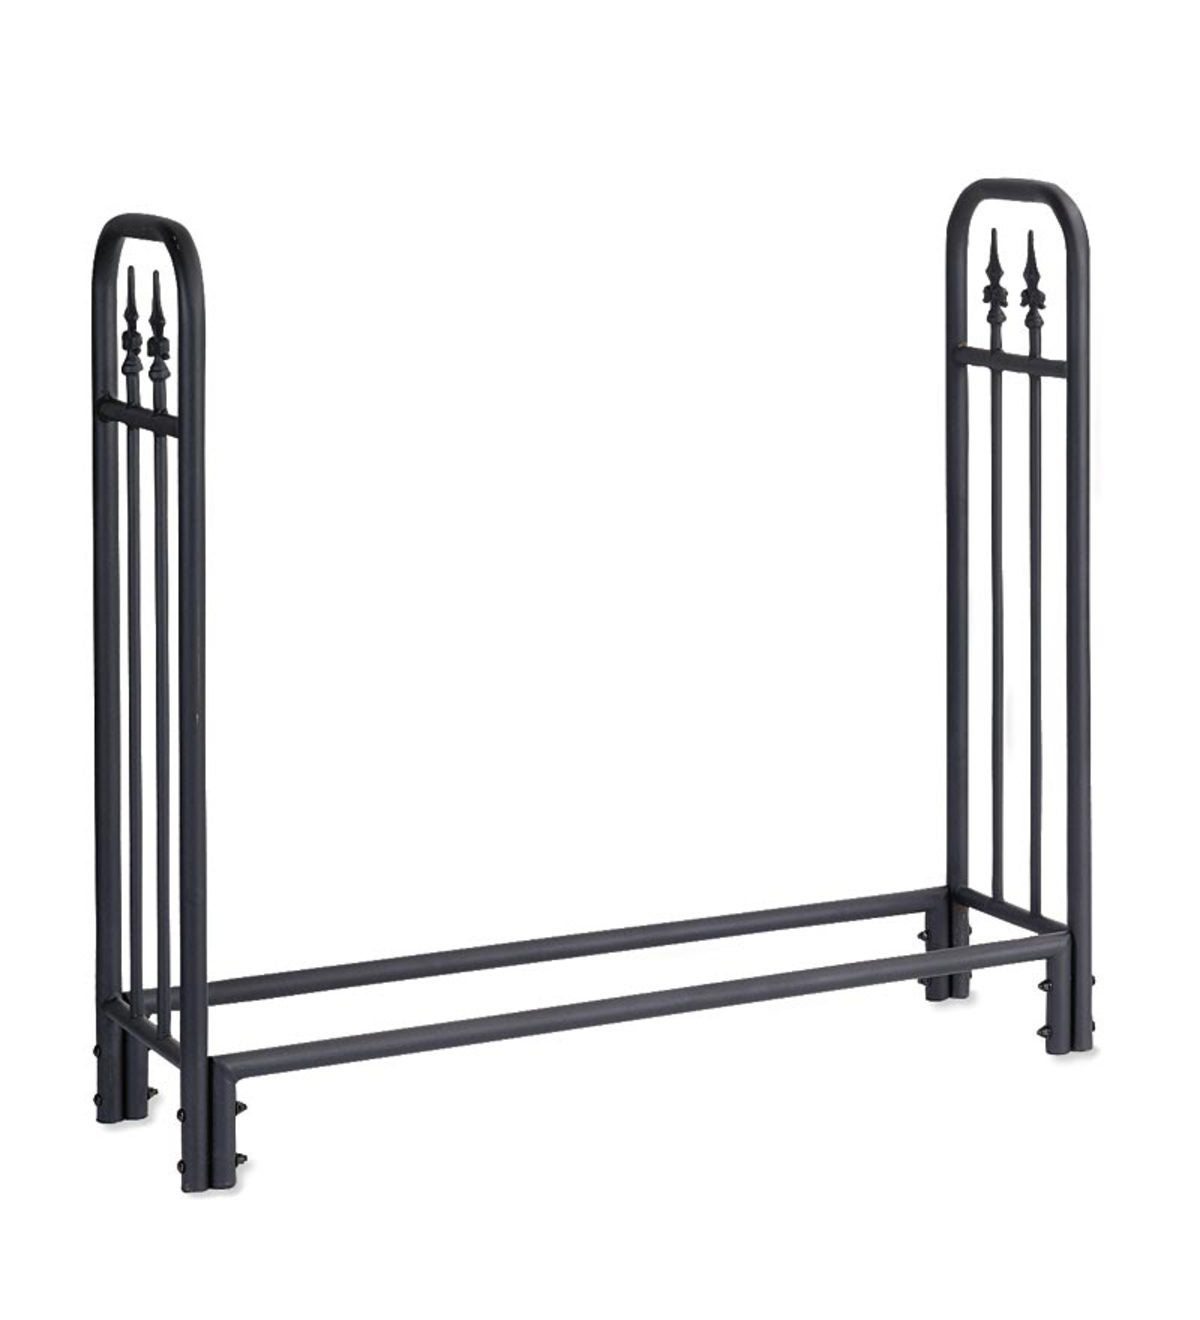 Medium Heavy Duty Steel Wood Rack with Finial Design